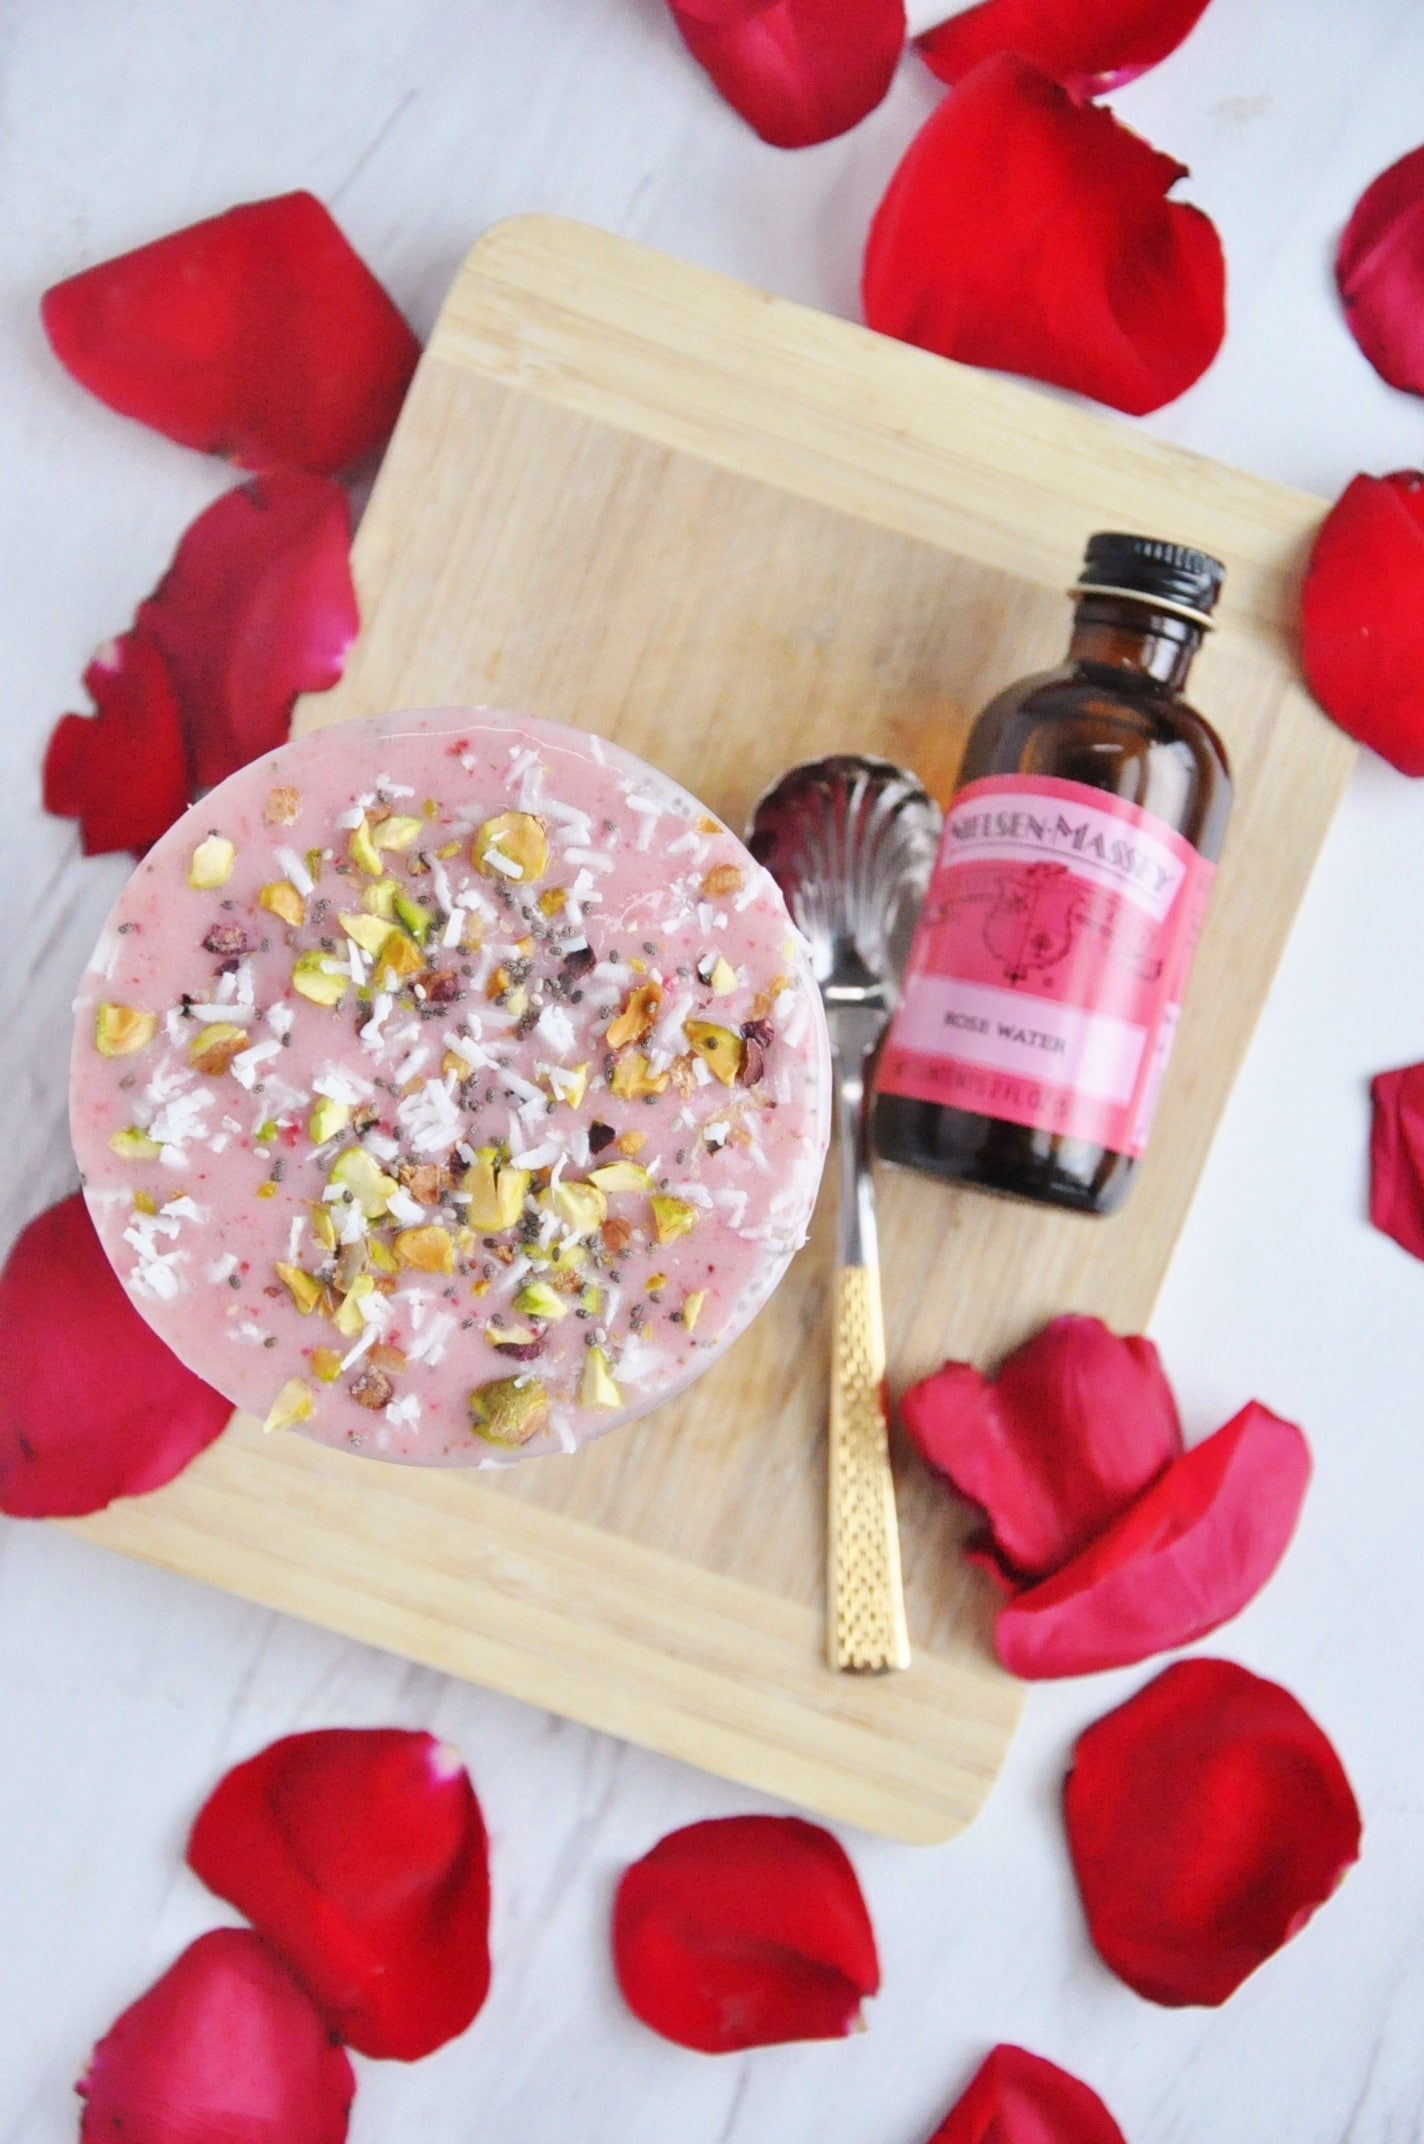 Rosewater Strawberry Smoothie Bowl